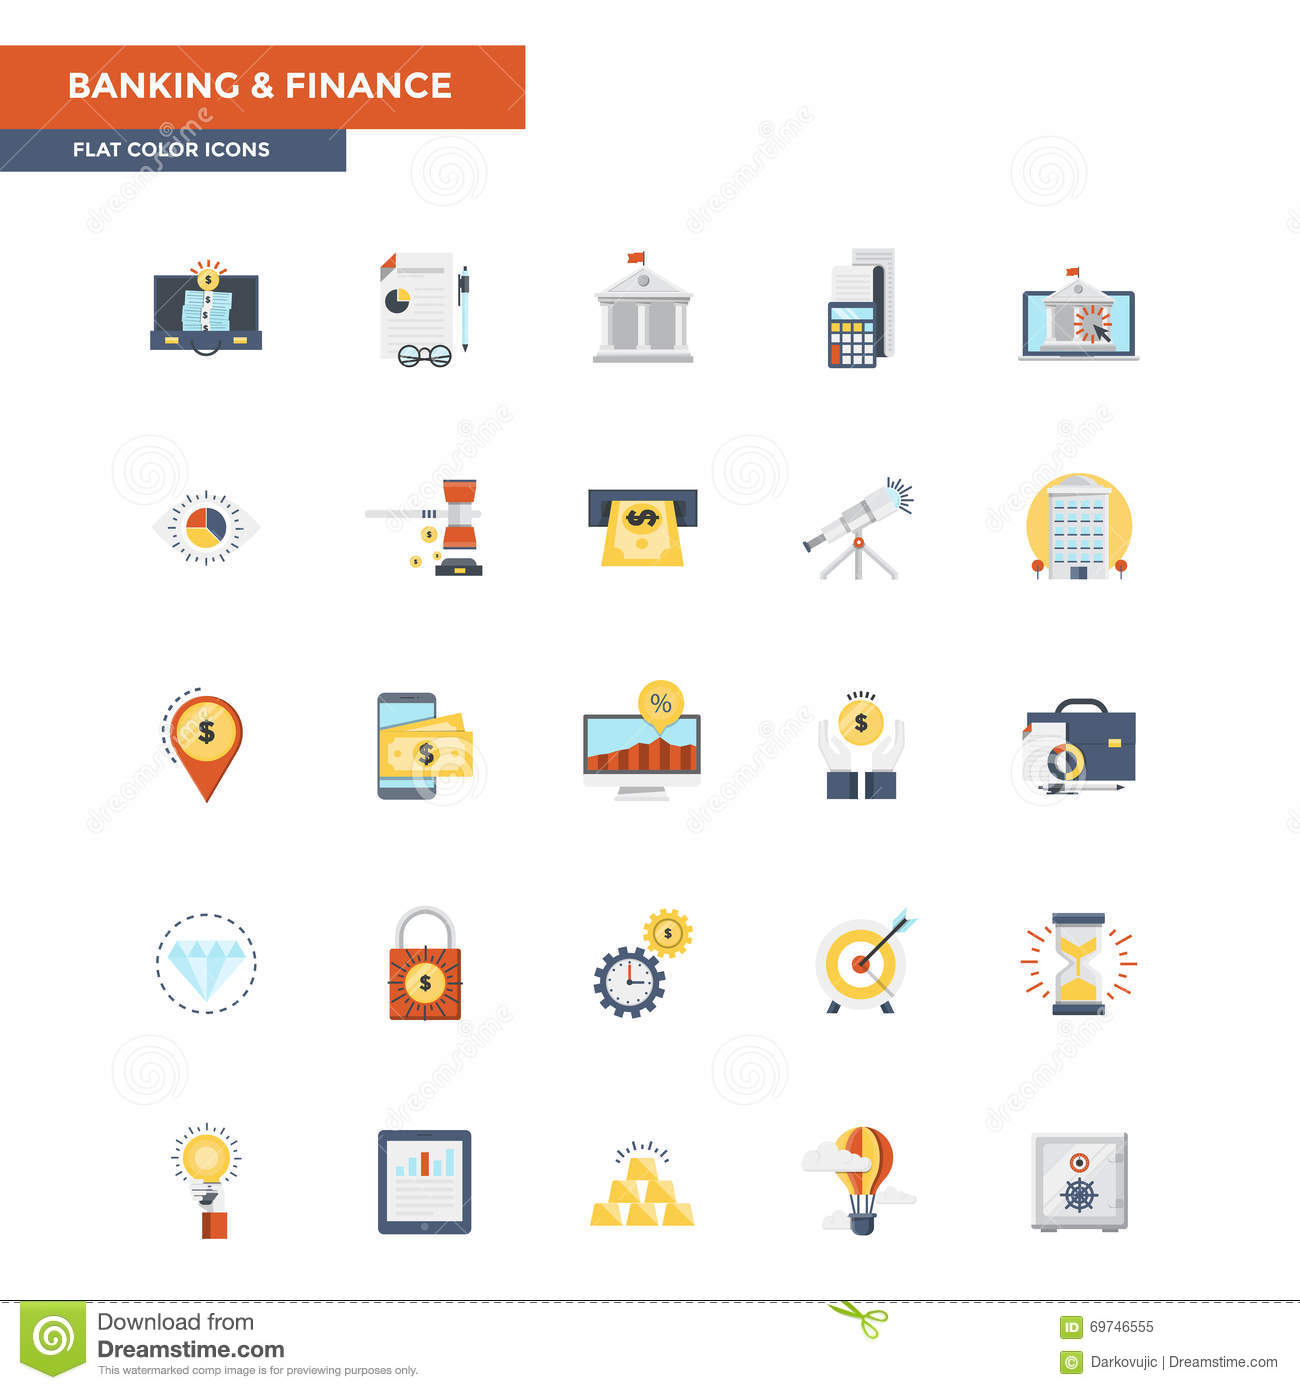 Flat Color Icons- Banking and Finance